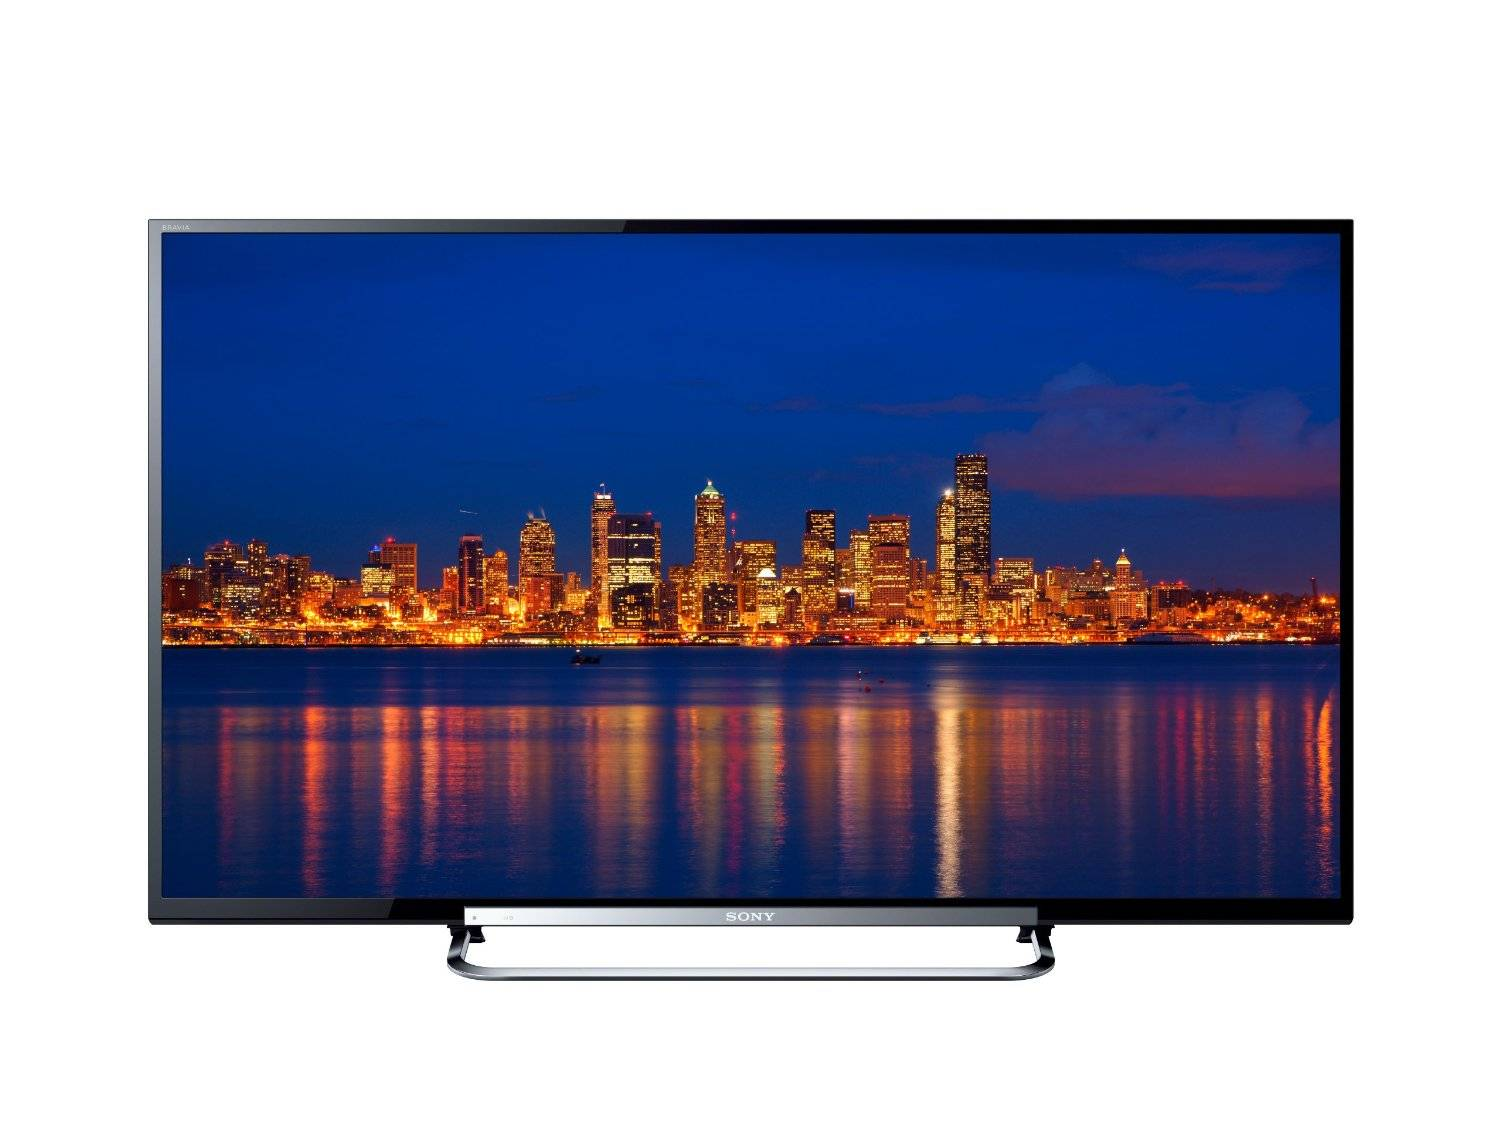 Sony KDL-70R550A 70 inch 60 inch 50 inch 120Hz 1080p 3D Internet LED HDTV (paypal)